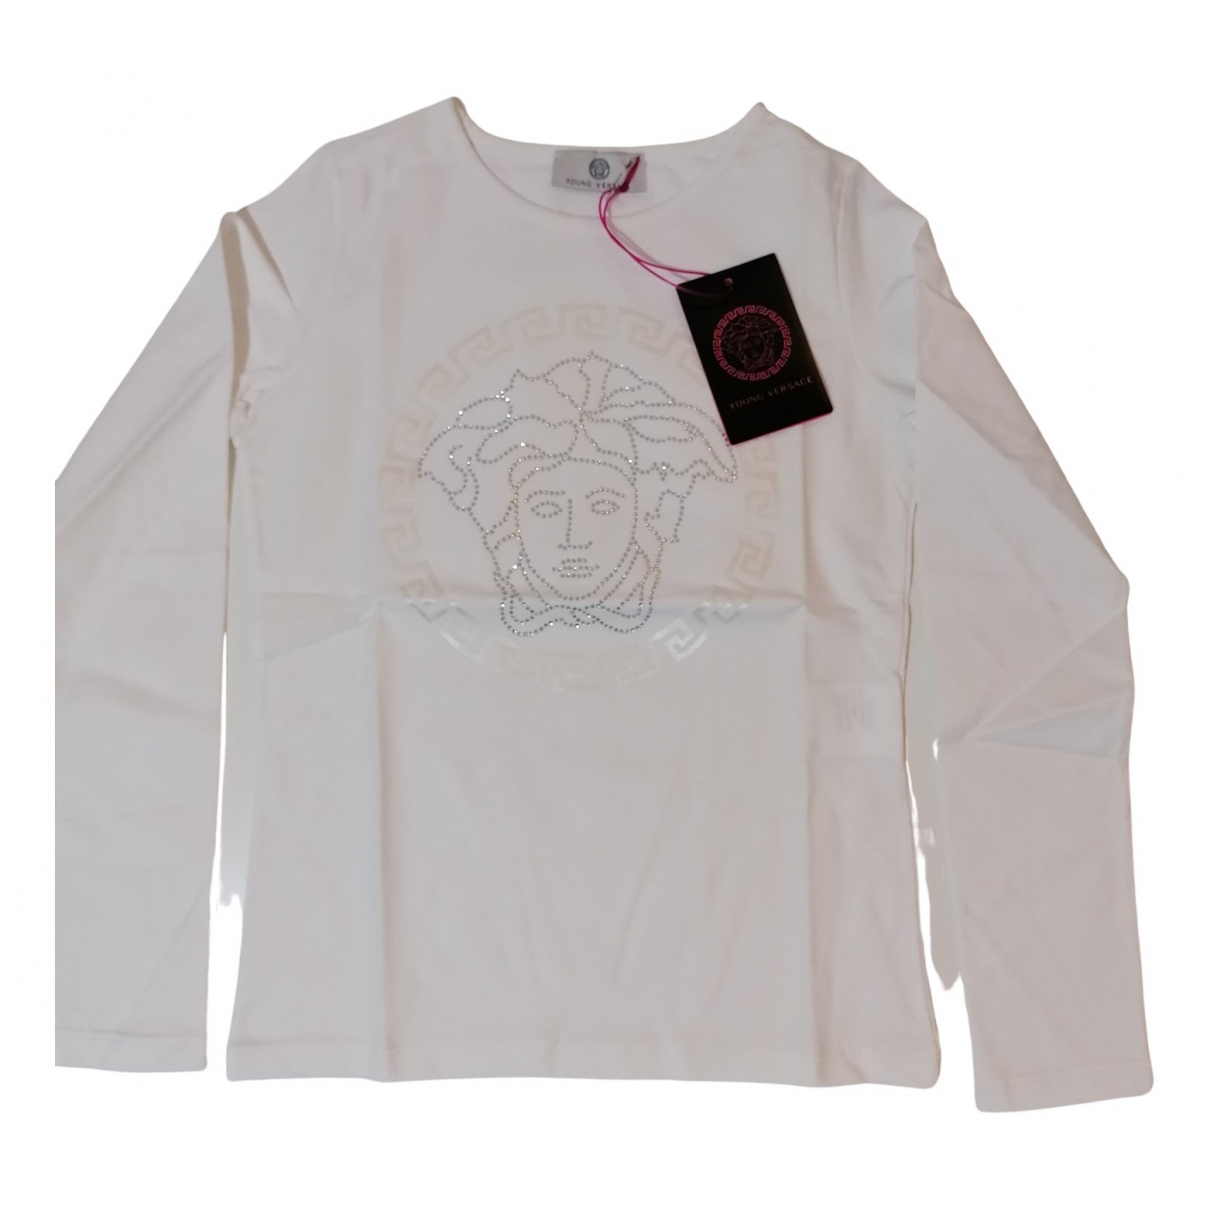 Versace N White Cotton  top for Kids 6 years - up to 114cm FR